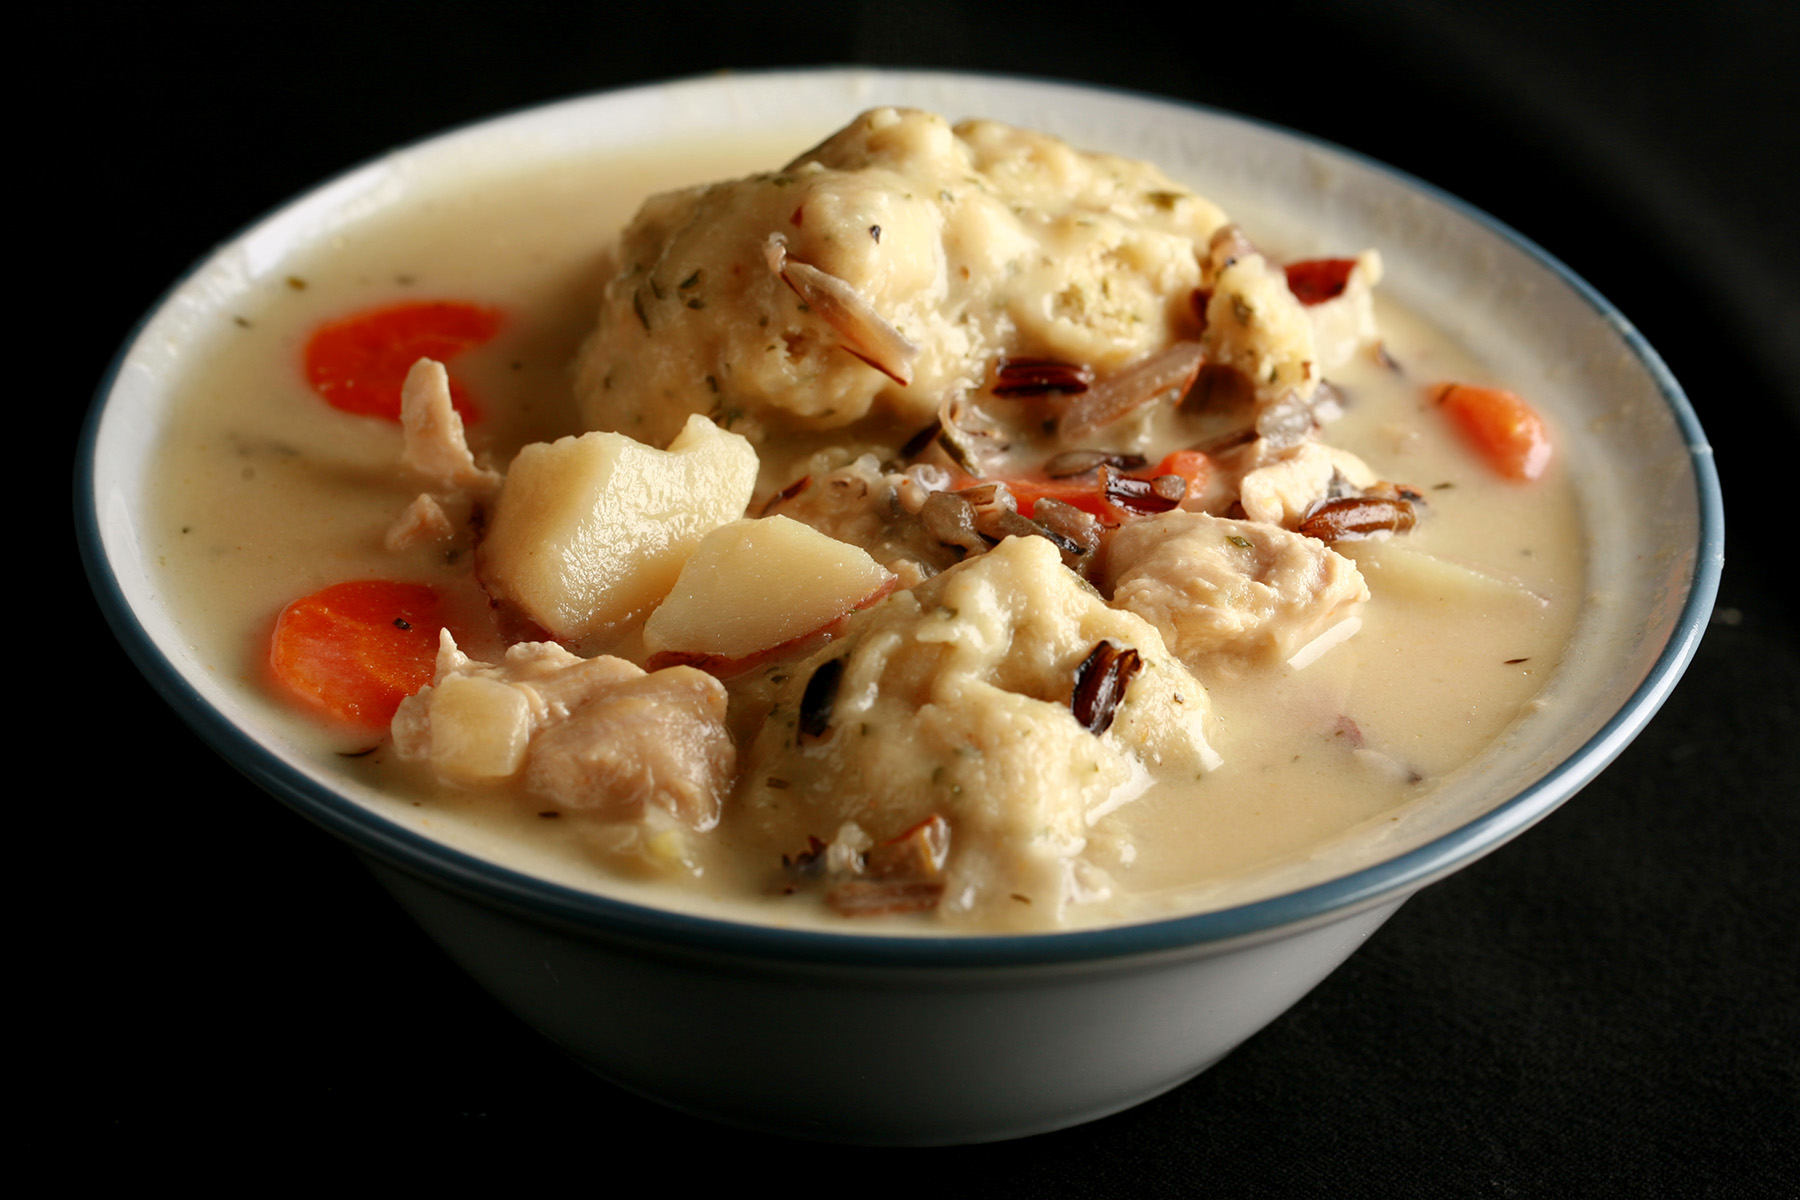 A bowl of gluten-free creamy chicken wild rice soup with dumplings.